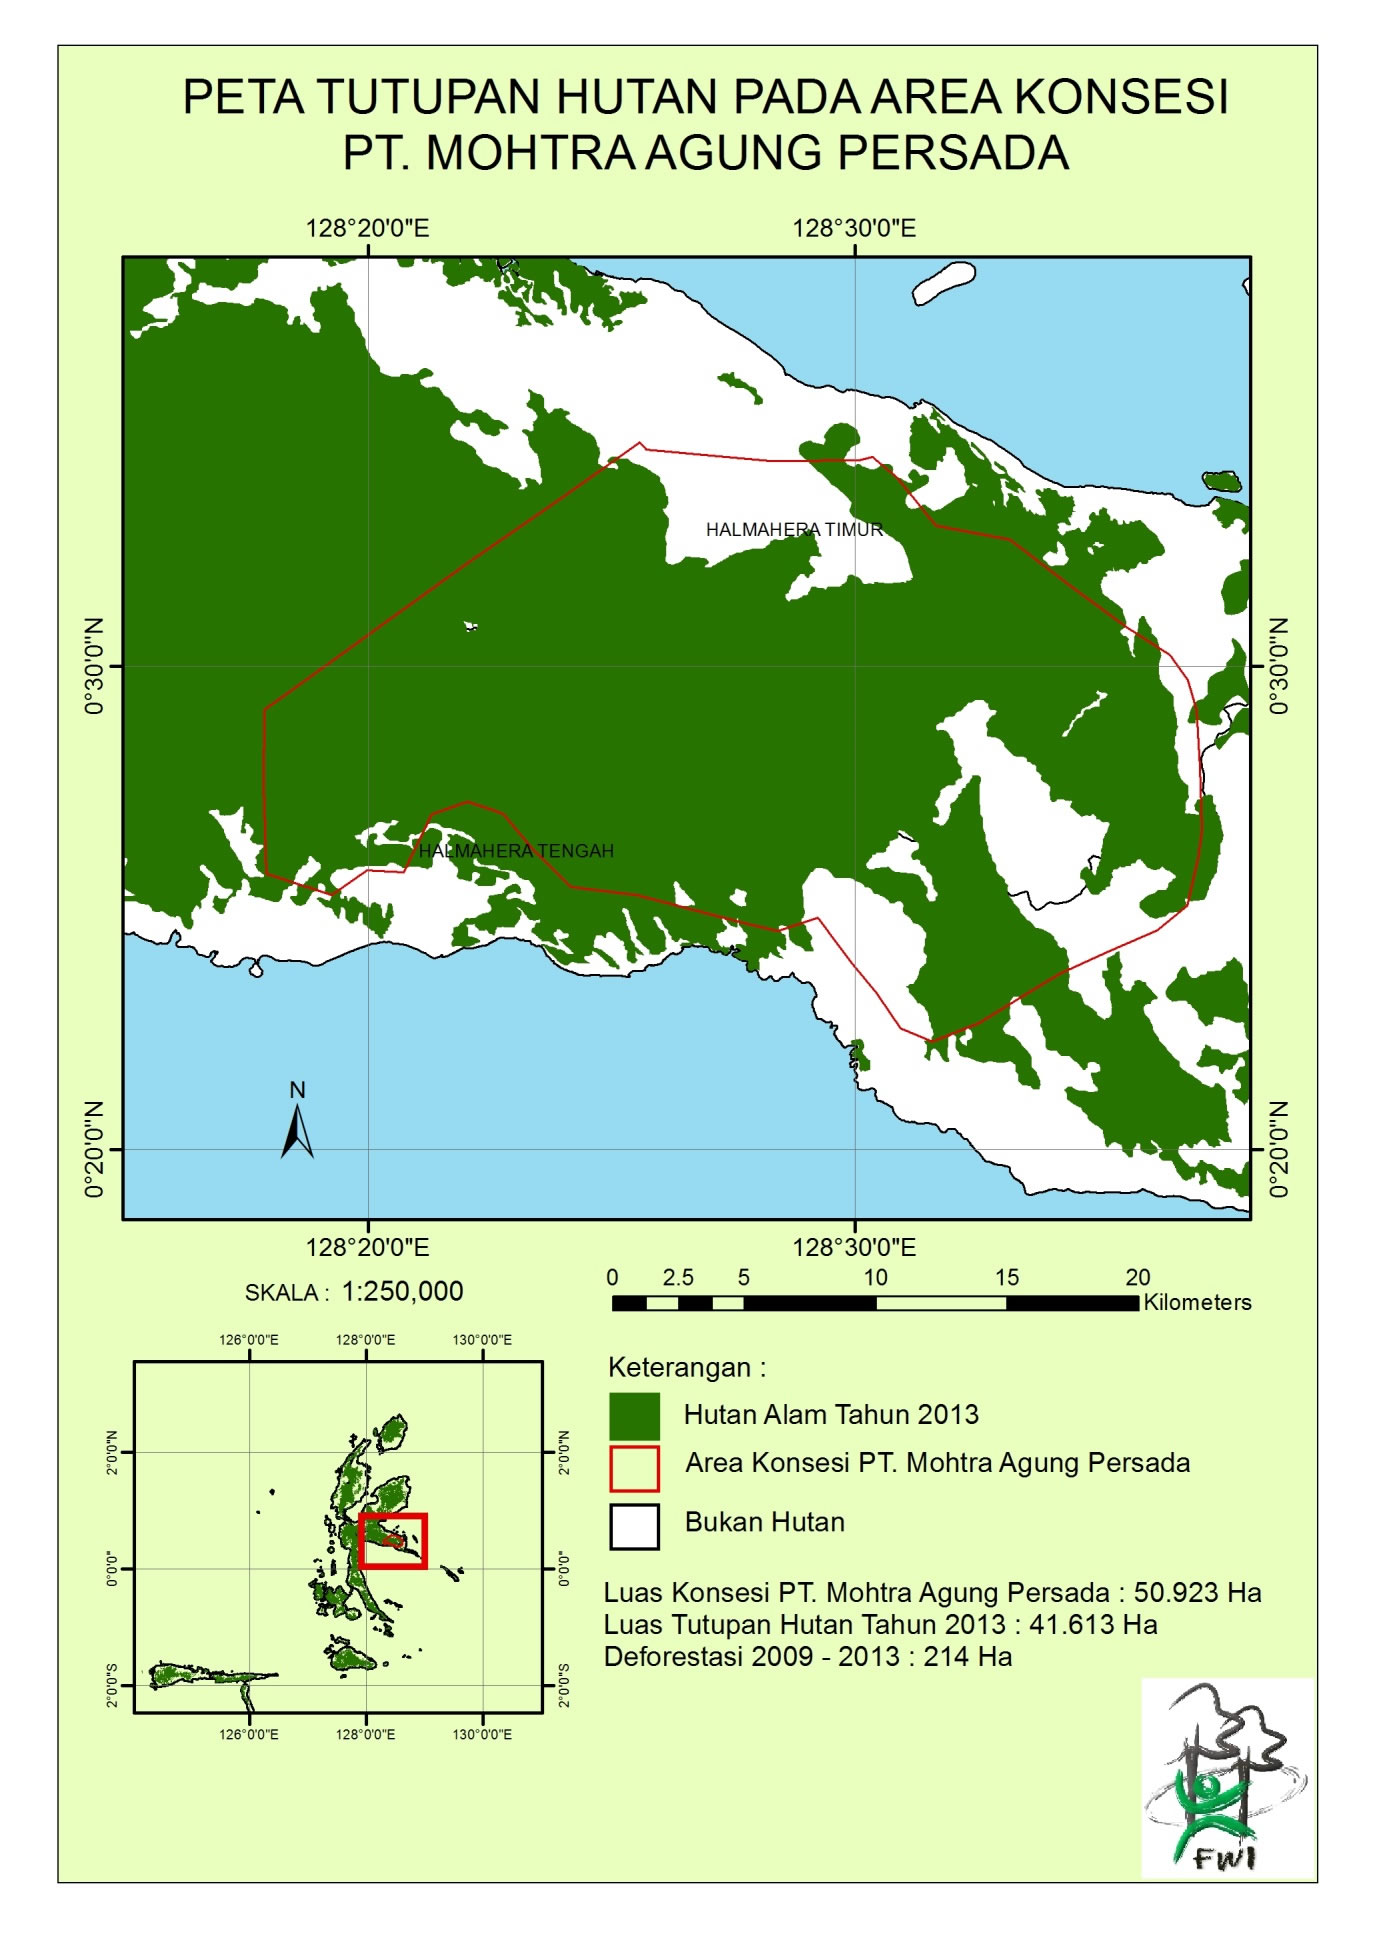 SVLK Violations and Denial of Natural Forest and Peatland Protection Policies